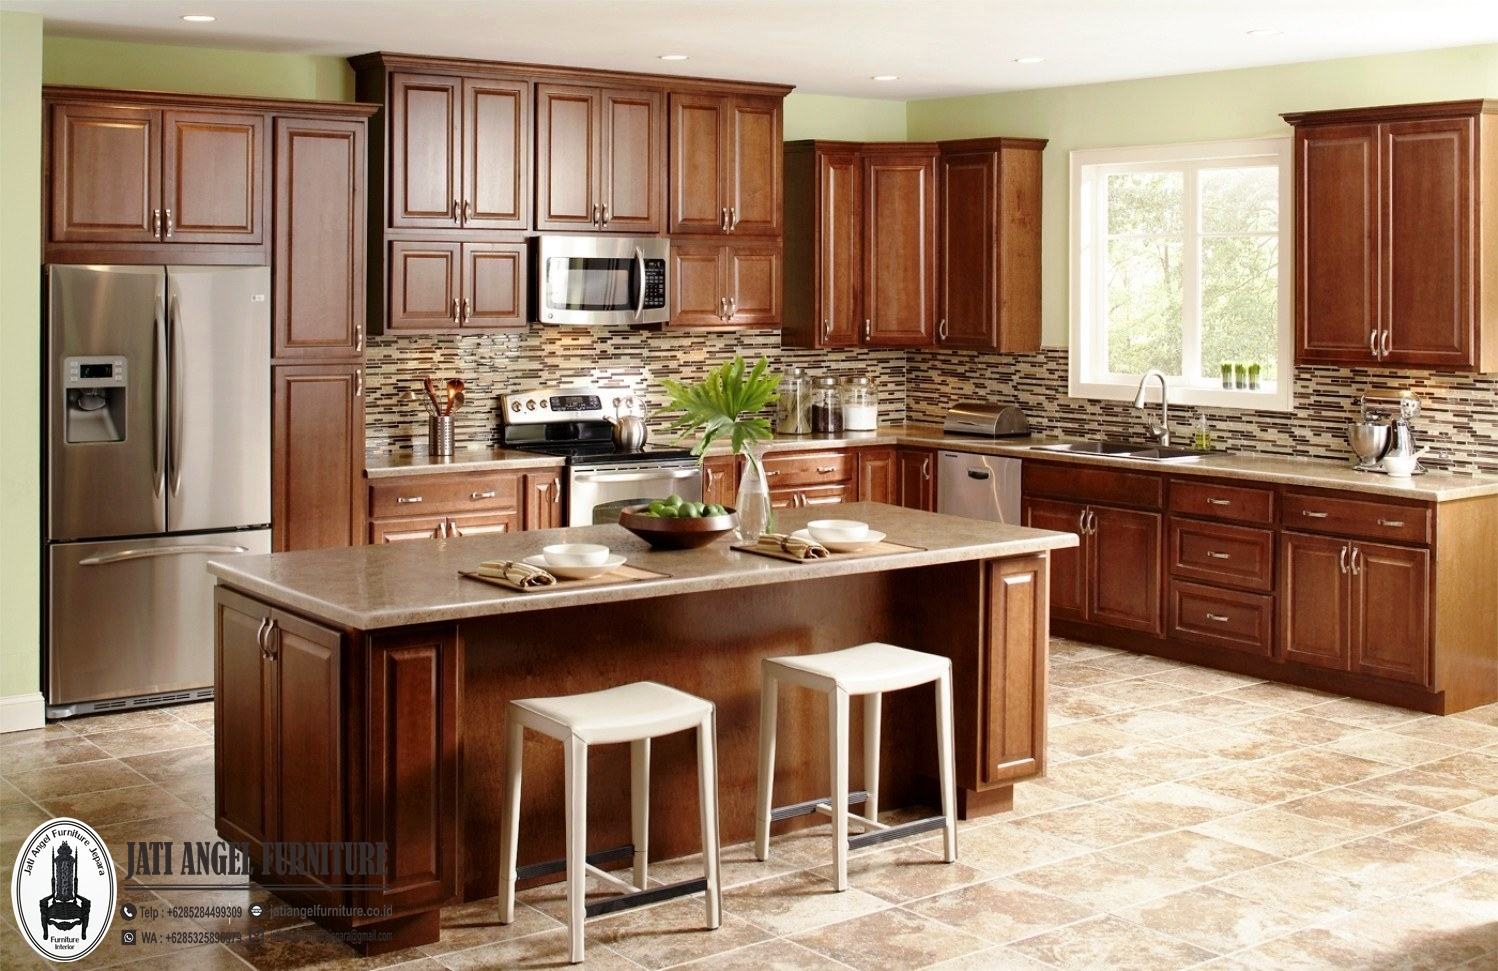 Kitchen Set Kayu Jati Jepara Minimalis Terbaru American Design Jati Angel Furniture